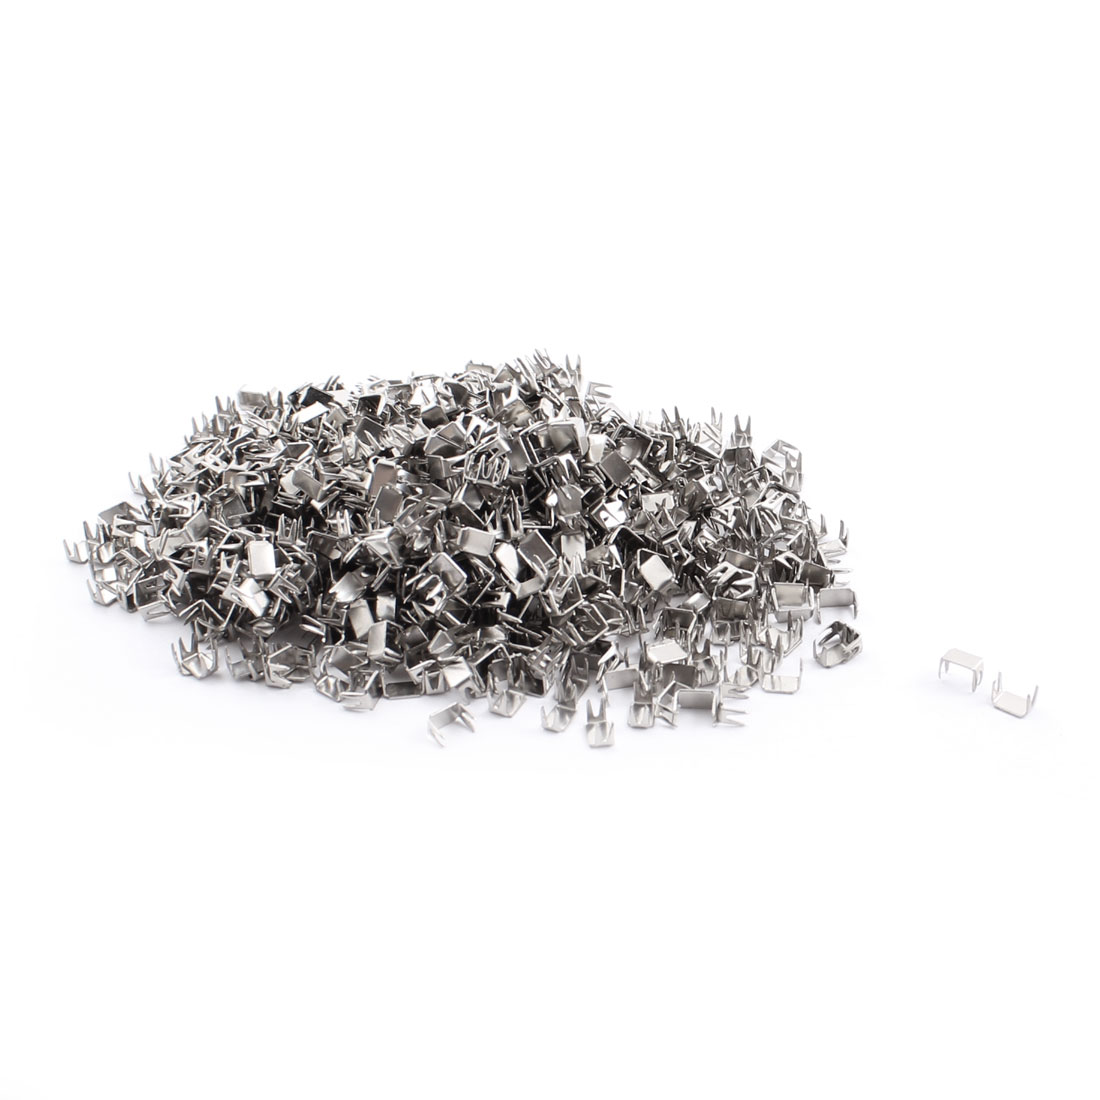 Zipper Slider Replacement Repairing Parts Bottom Stopper Stop Kit Silver Tone 500 Pcs